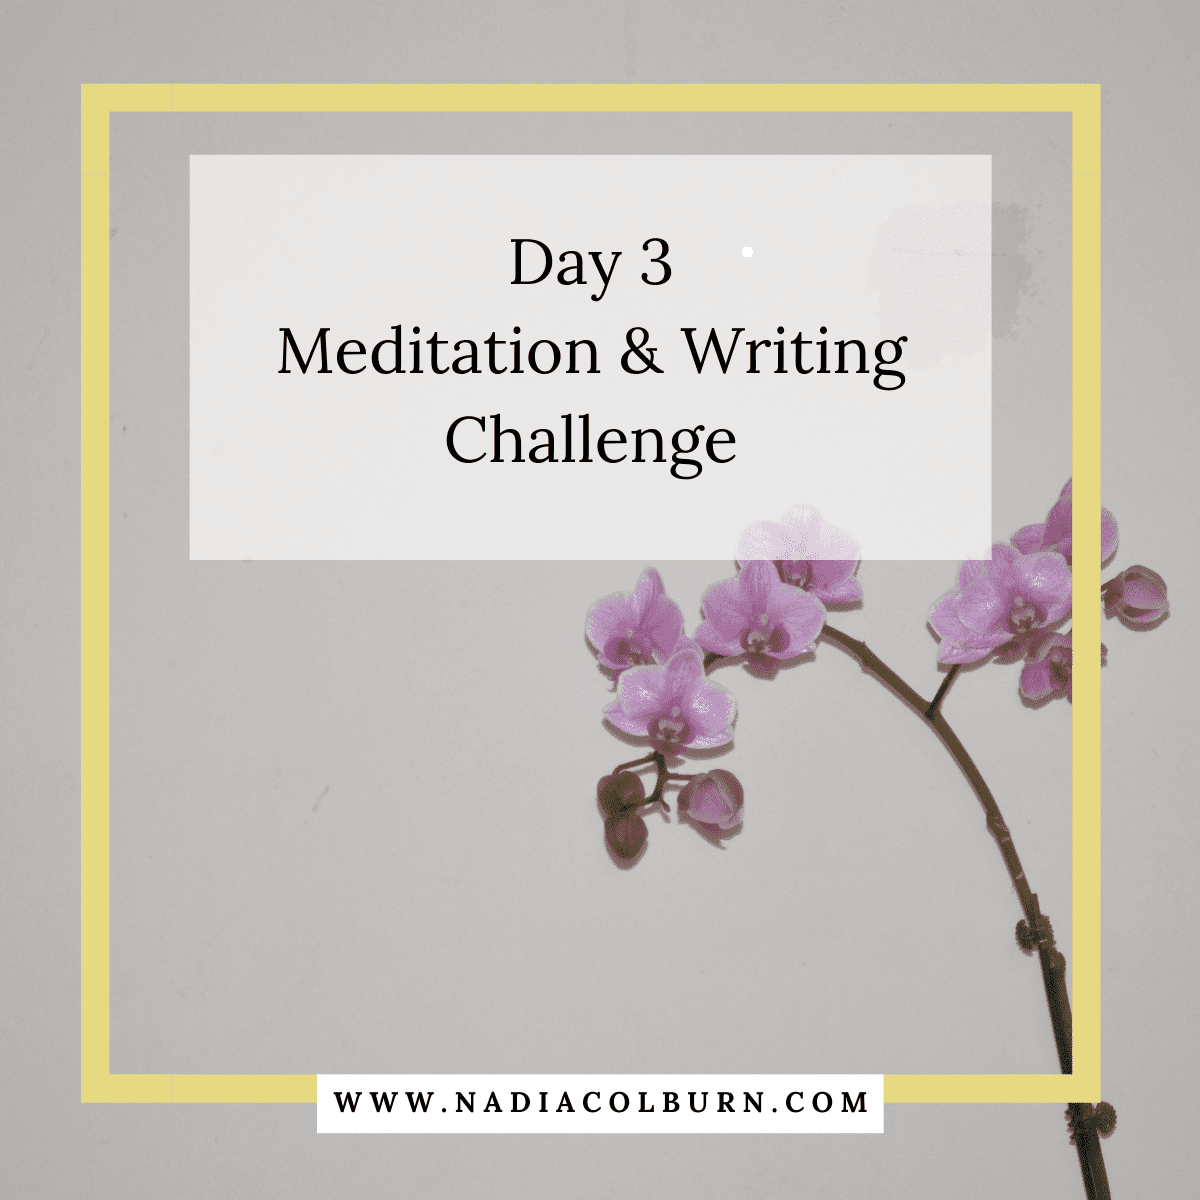 2021 Meditation and Writing Challenge Day 4 6